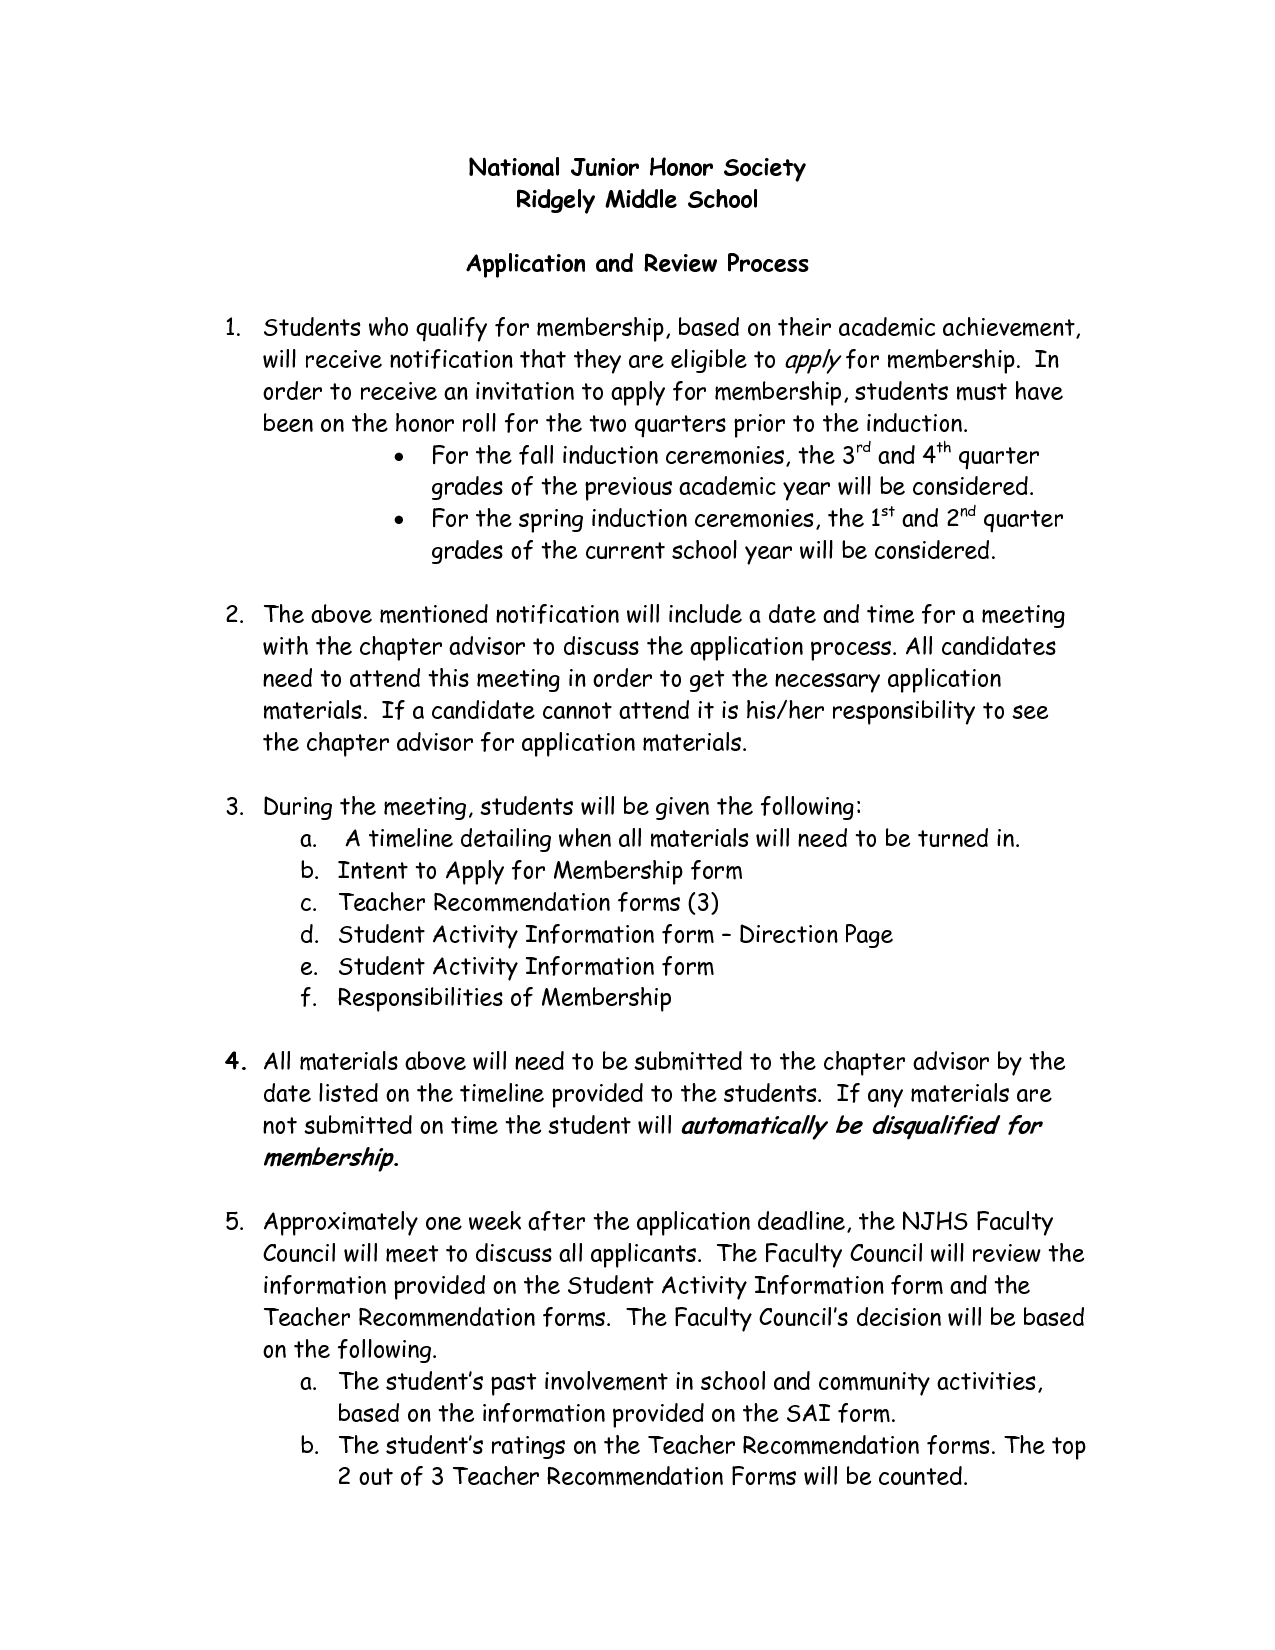 007 Essay Example Njhs Conclusion National Honors Society Examples Of Honor Junior Unique Full